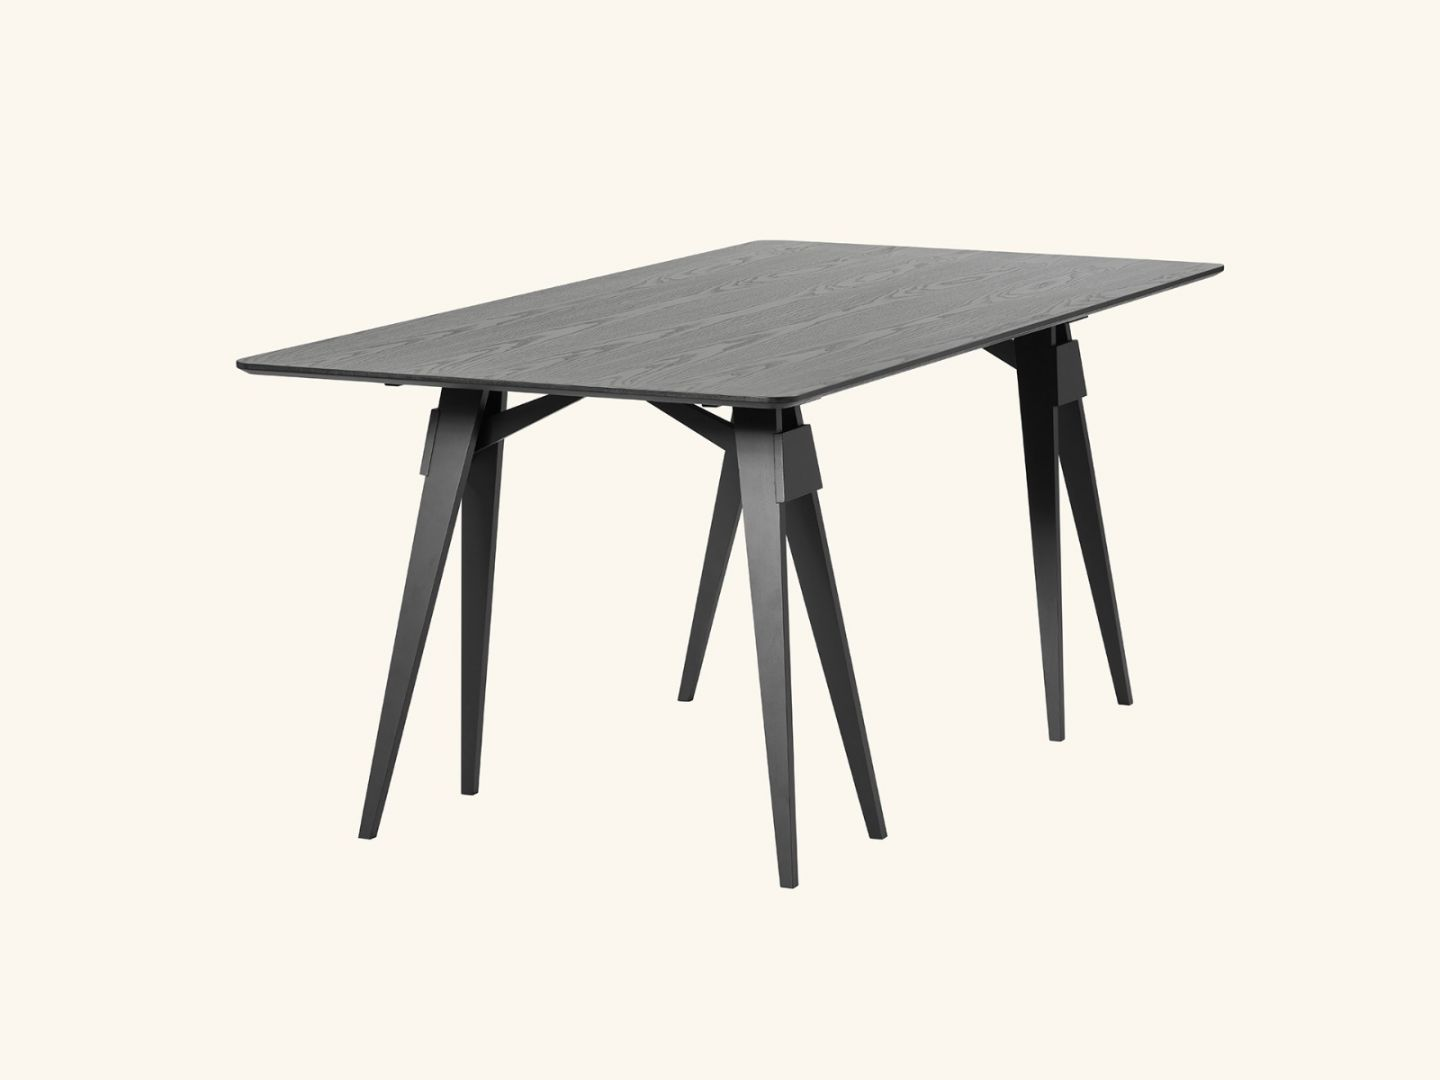 Arco table 90x180 Black